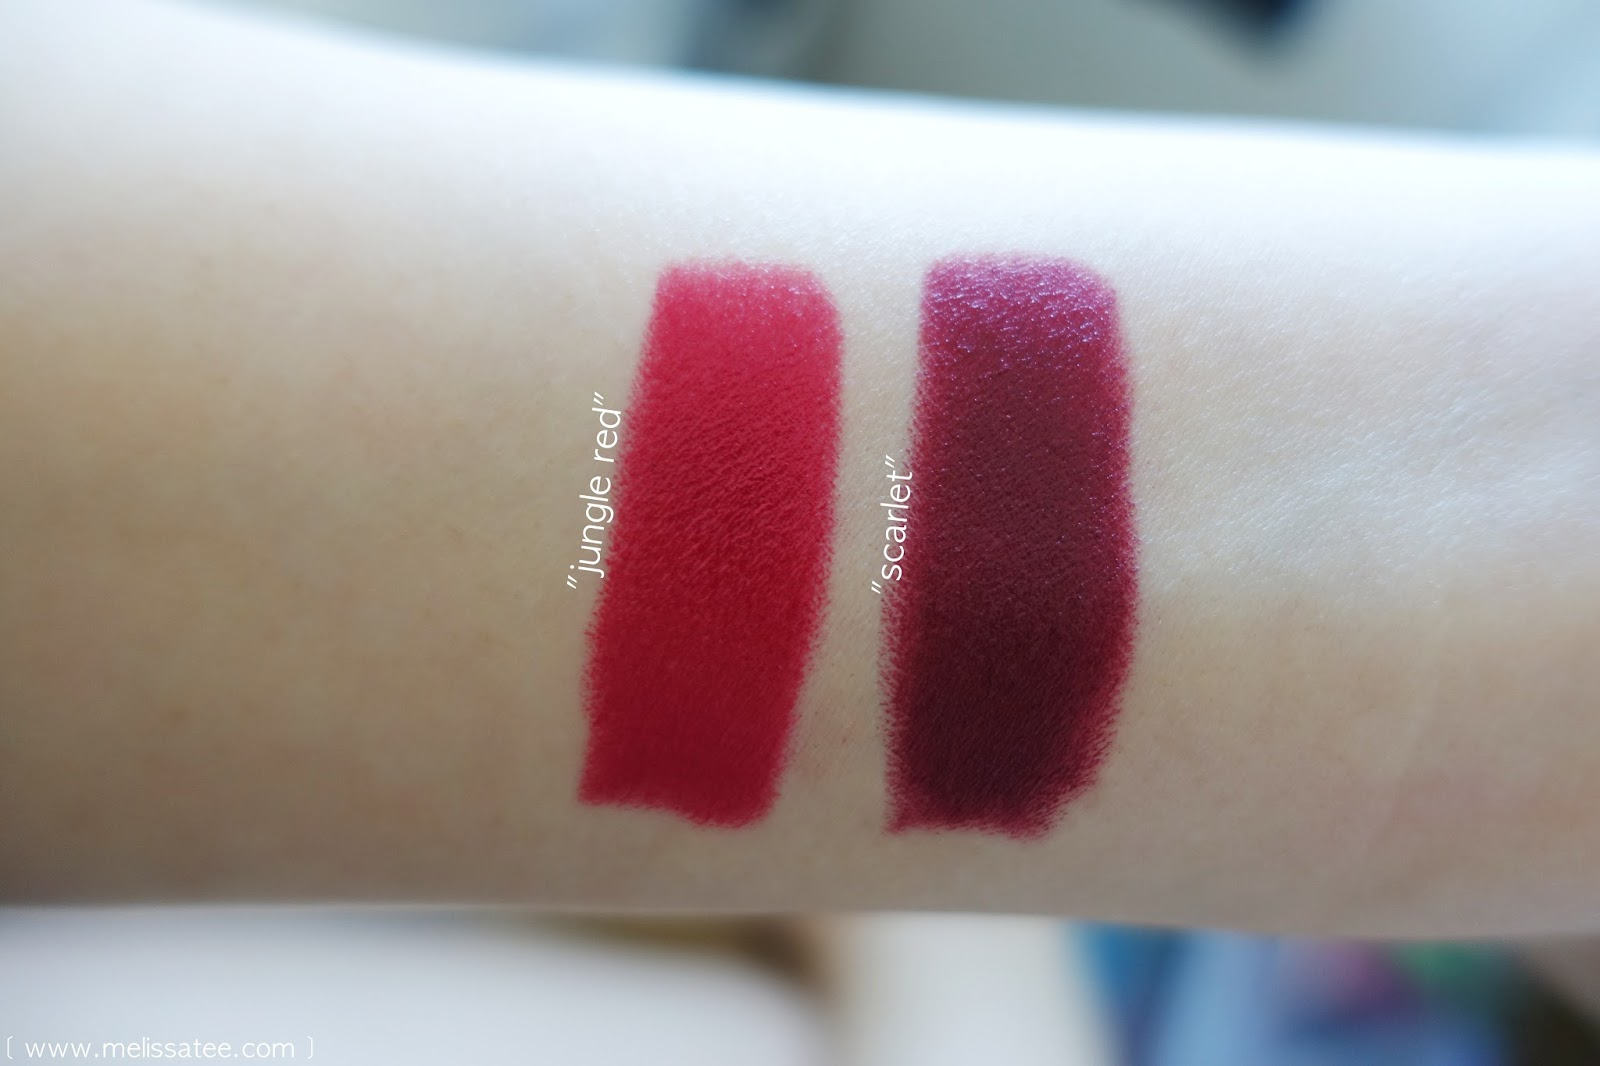 Blushing Introvert Motives Cosmetics Lipsticks